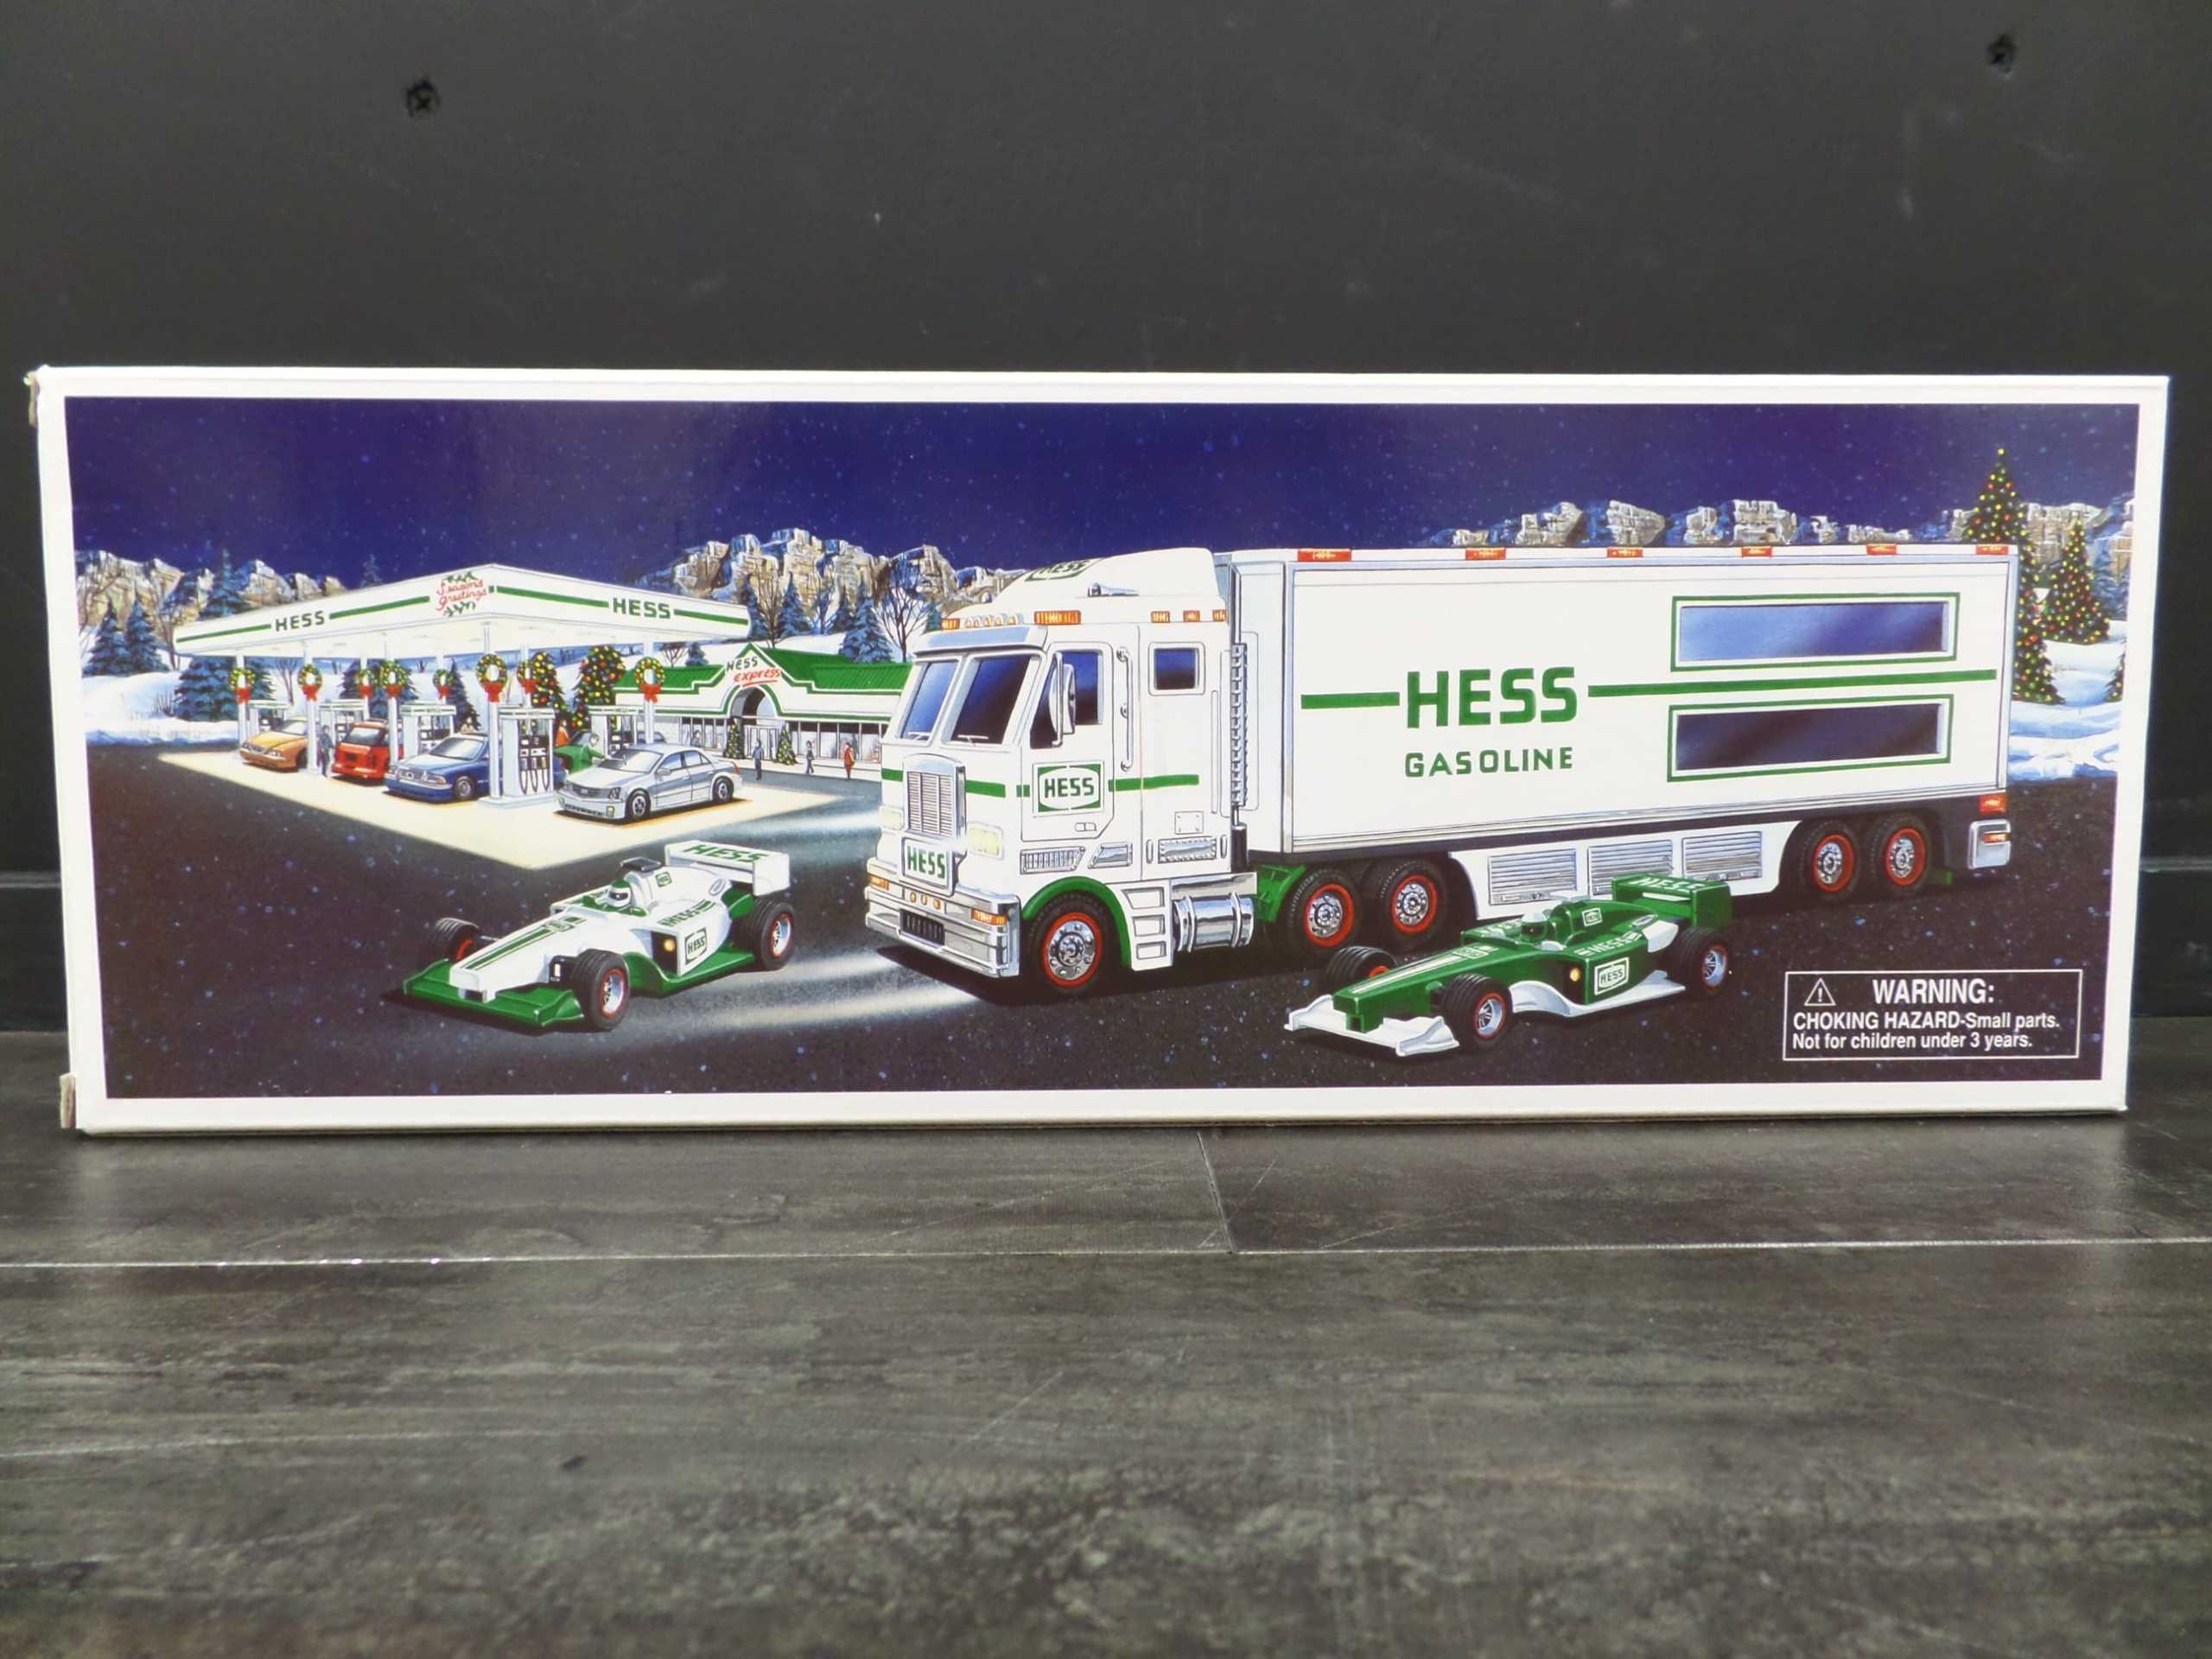 2003 HESS TRUCK & 2 RACERS <br/> Donated by:  WPBS SUPPORTER <br> Valued at: $65